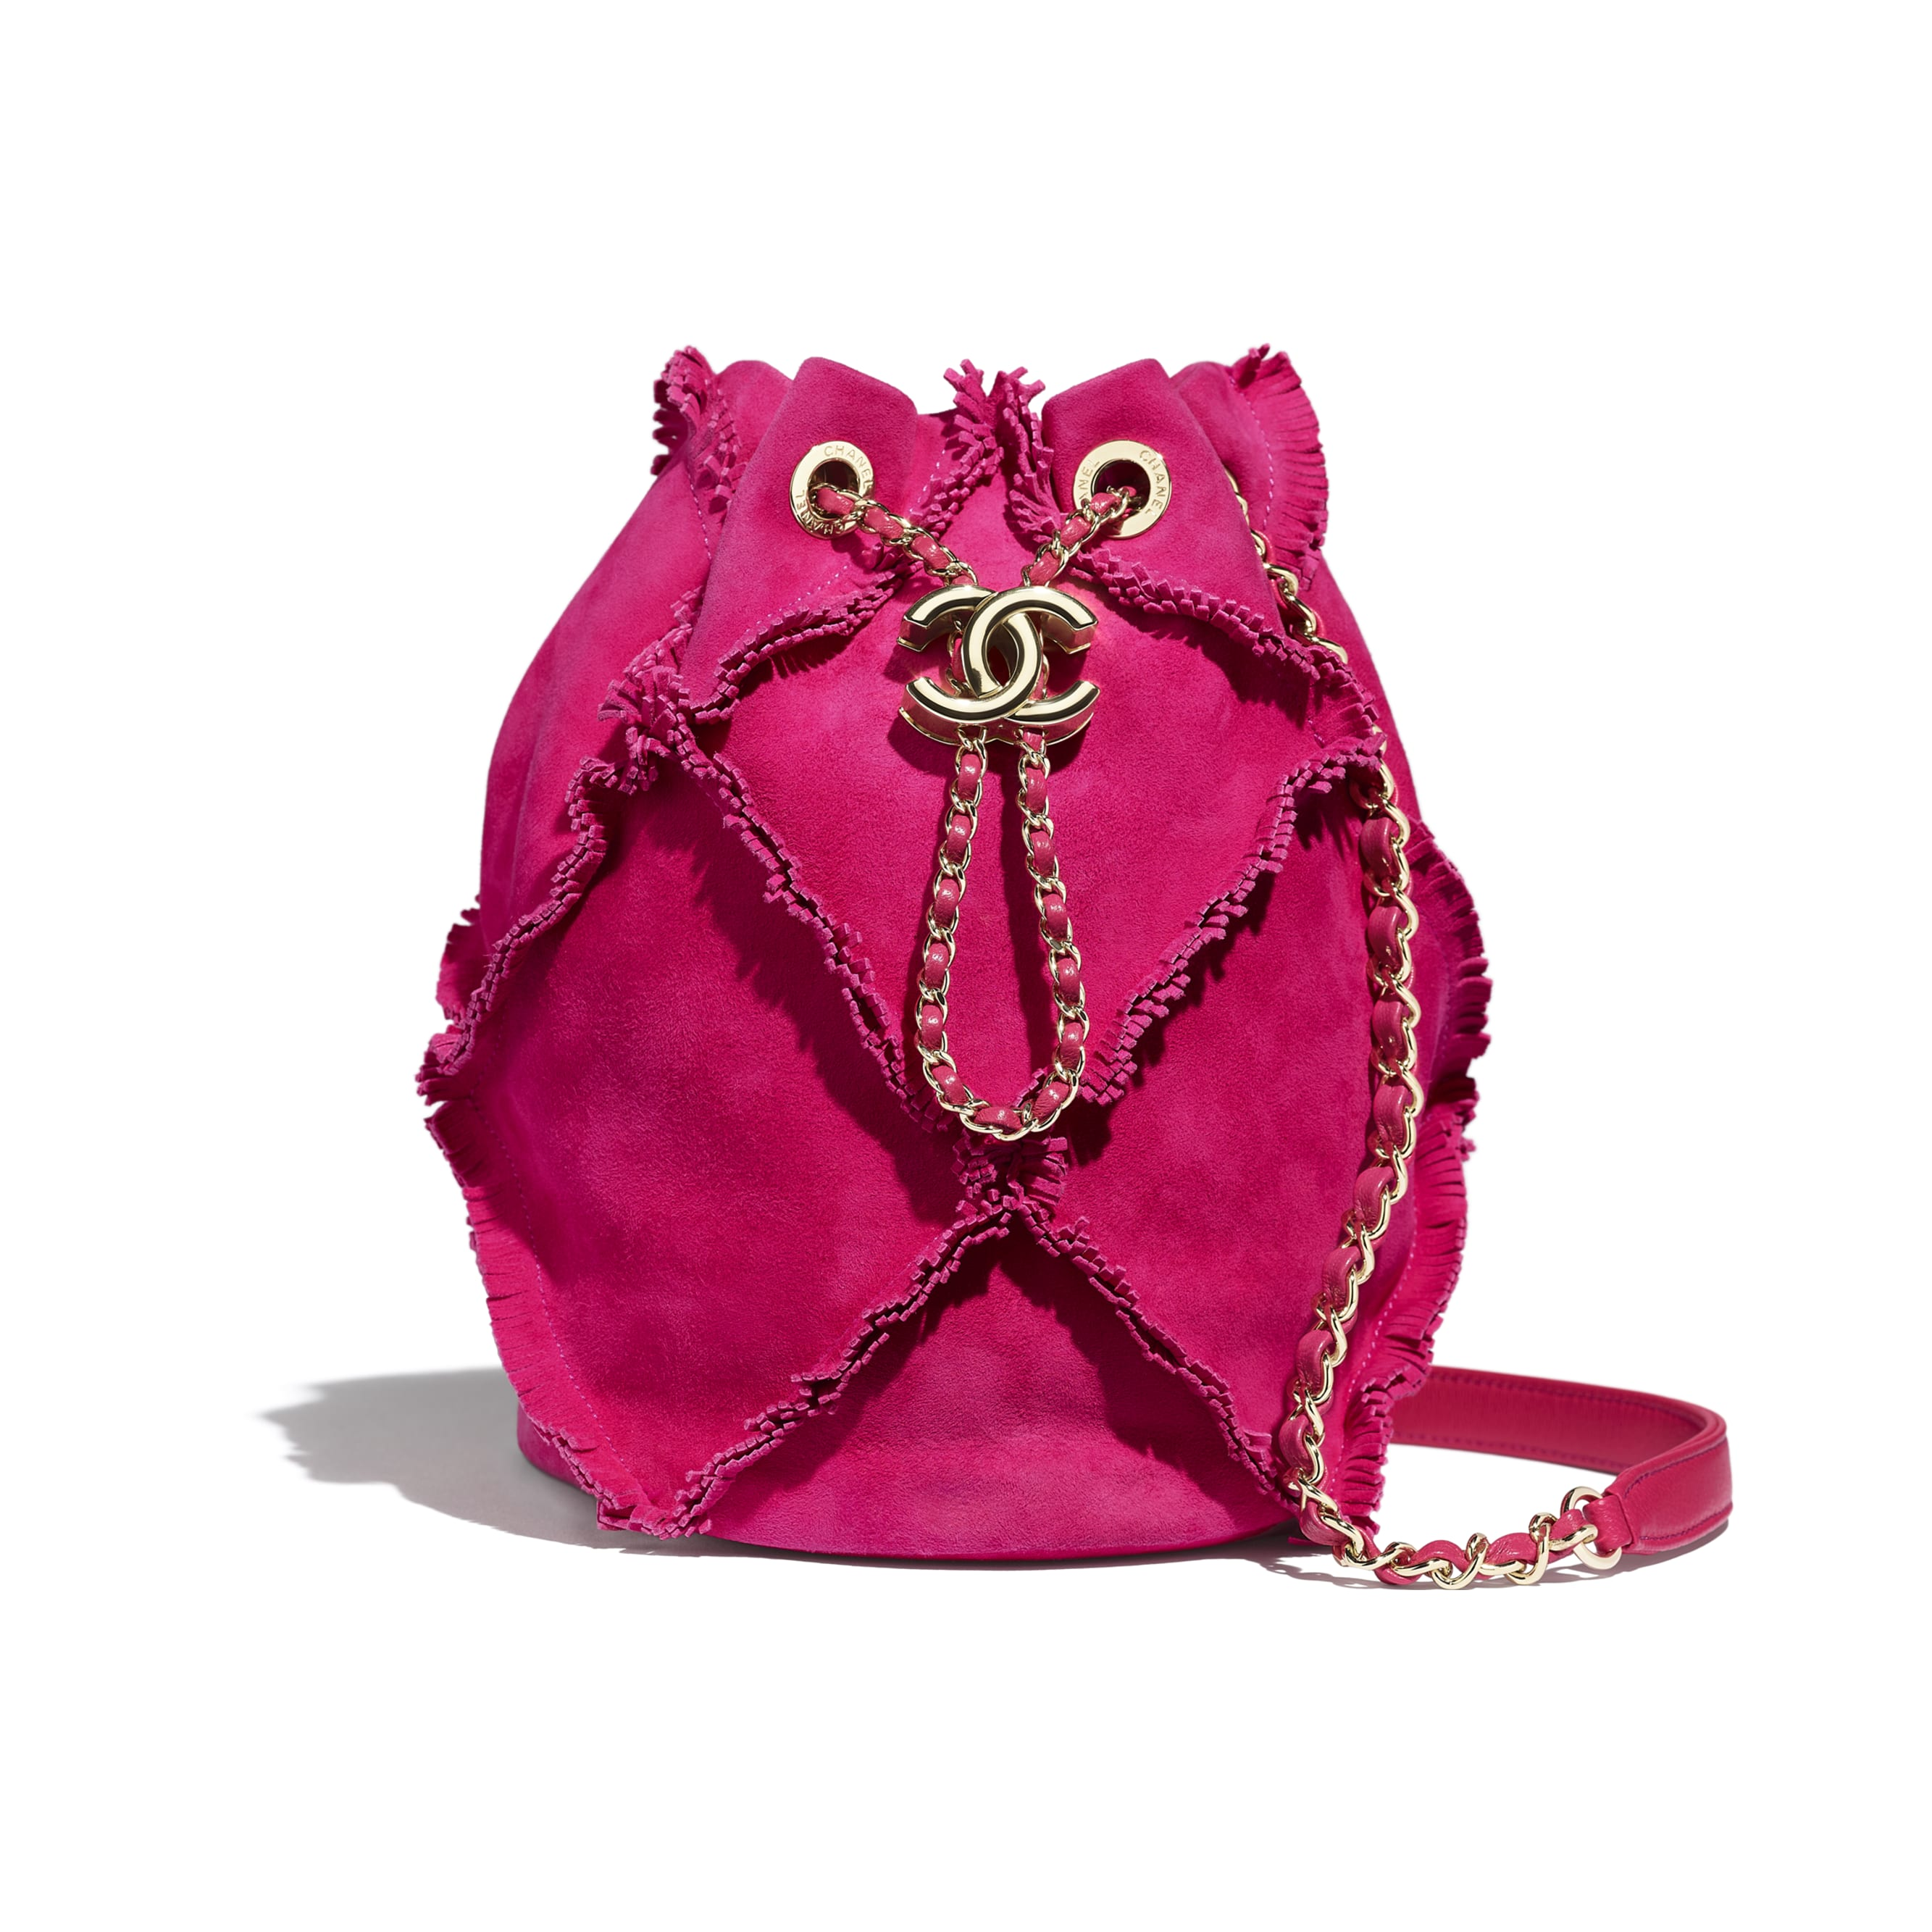 Small Drawstring Bag - Fuchsia - Suede Goatskin & Gold-Tone Metal - CHANEL - Default view - see standard sized version